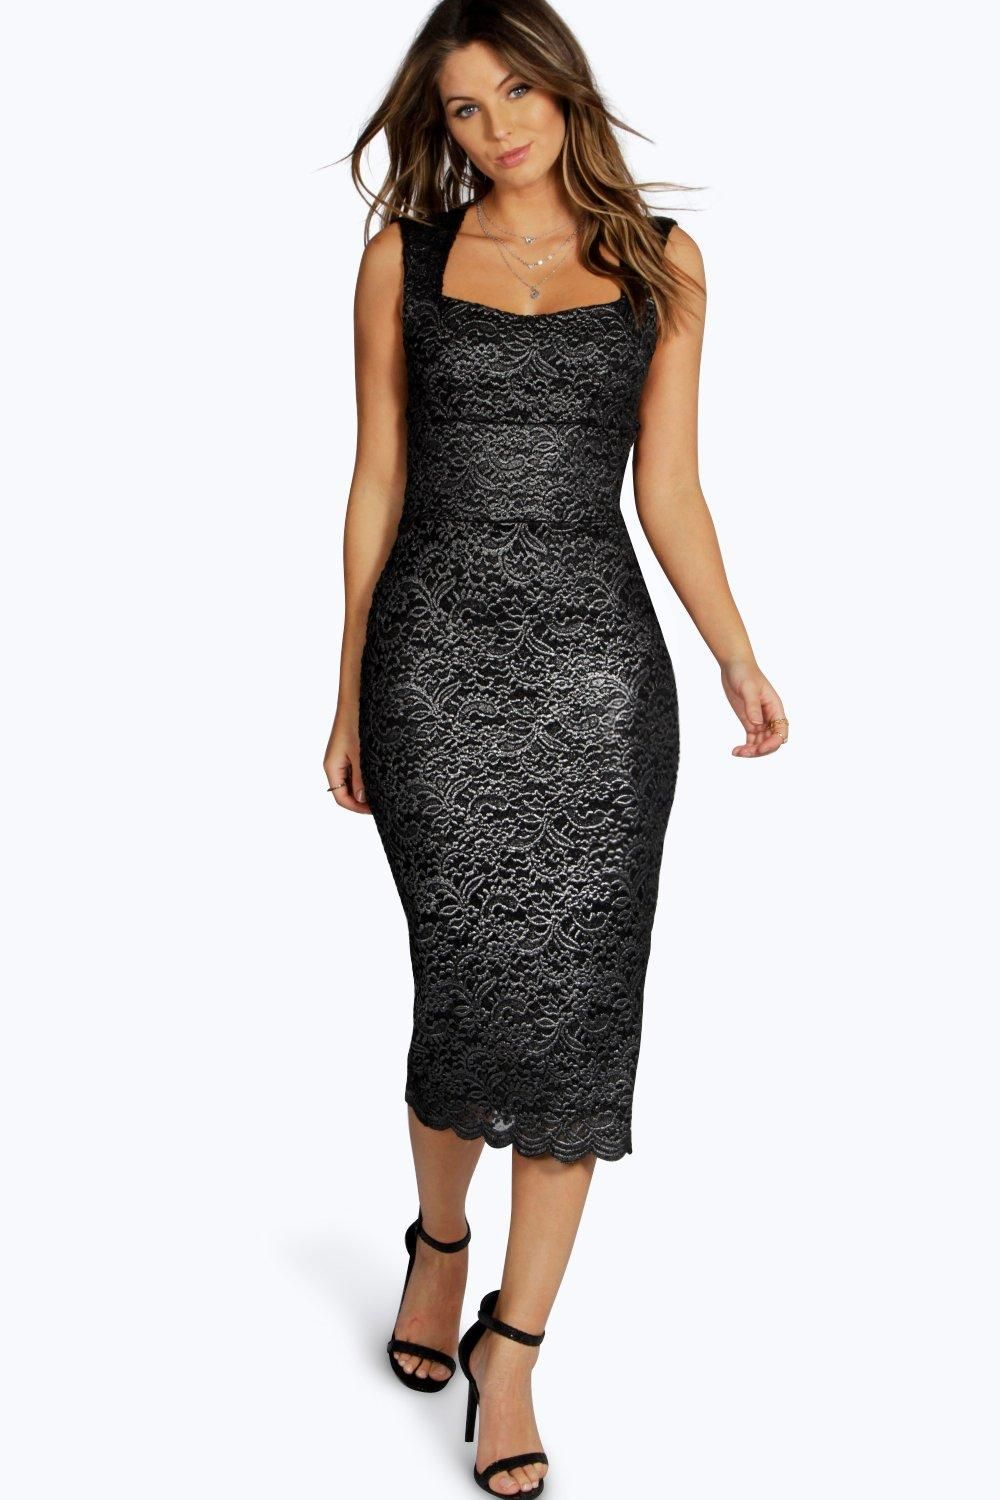 9970f6544f0 Dresses are the most-wanted wardrobe item for day-to-night dressing ...